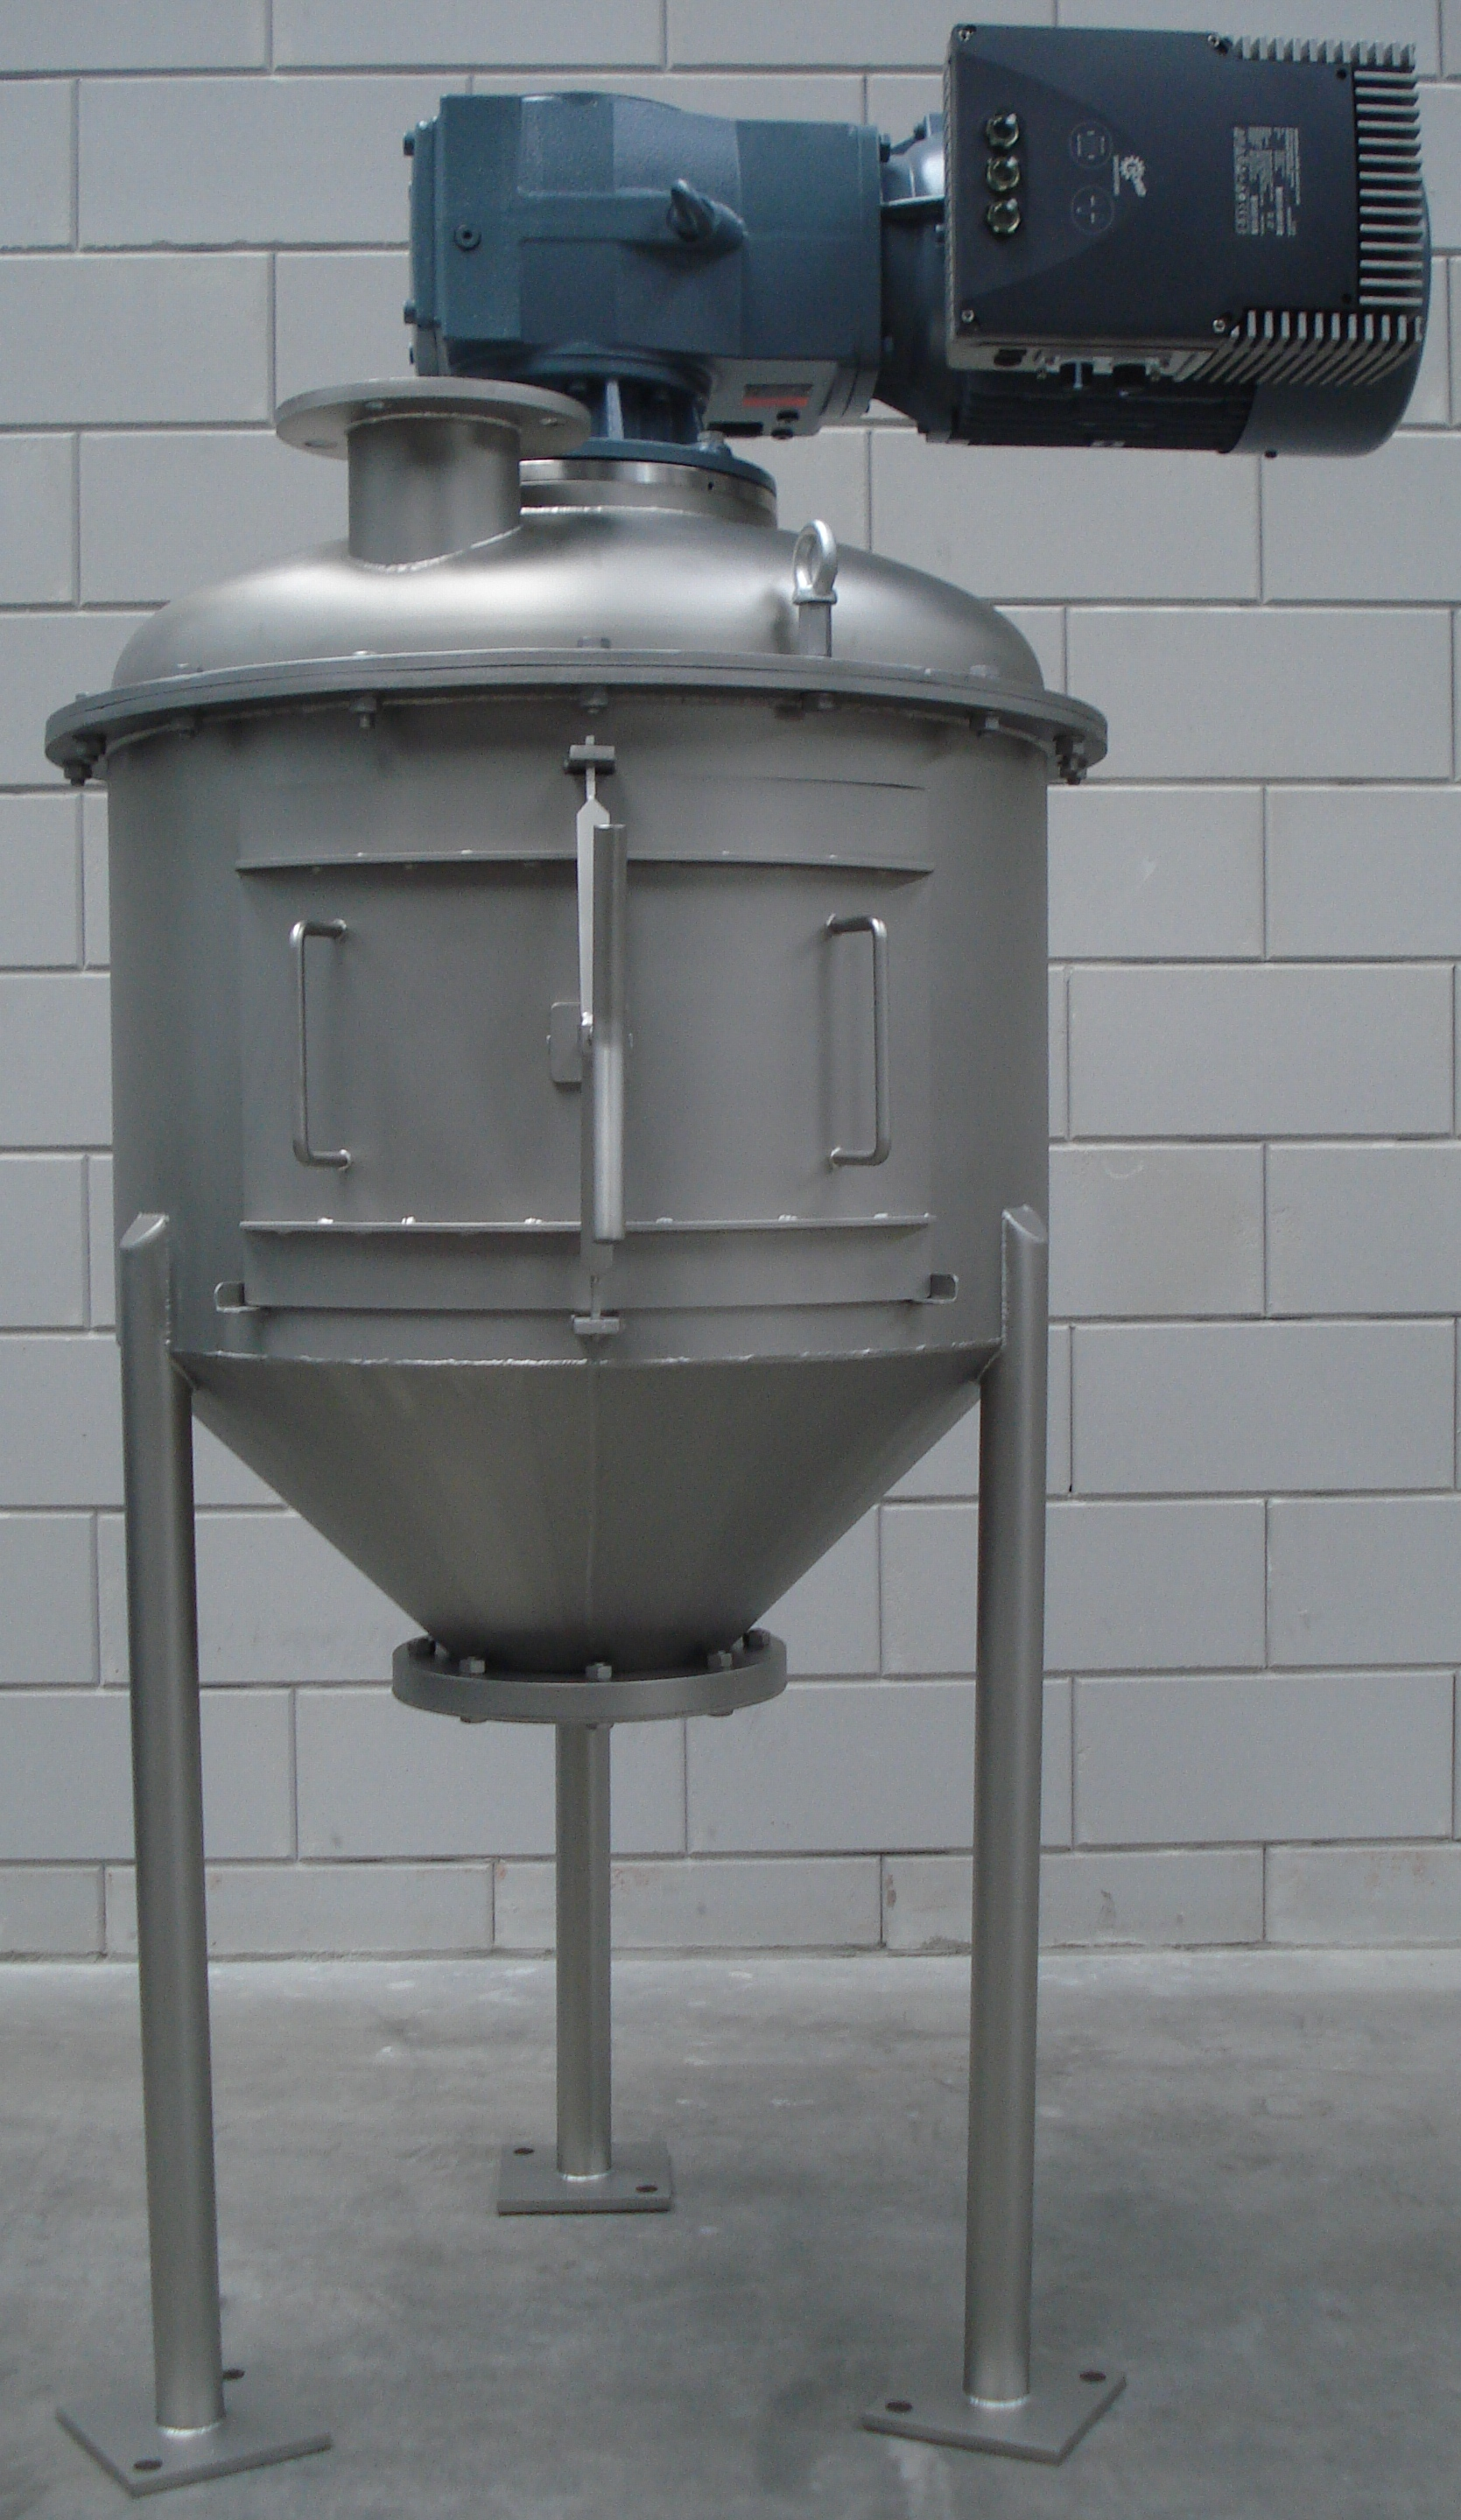 Ribbon blade mixer for dry substances and pastes